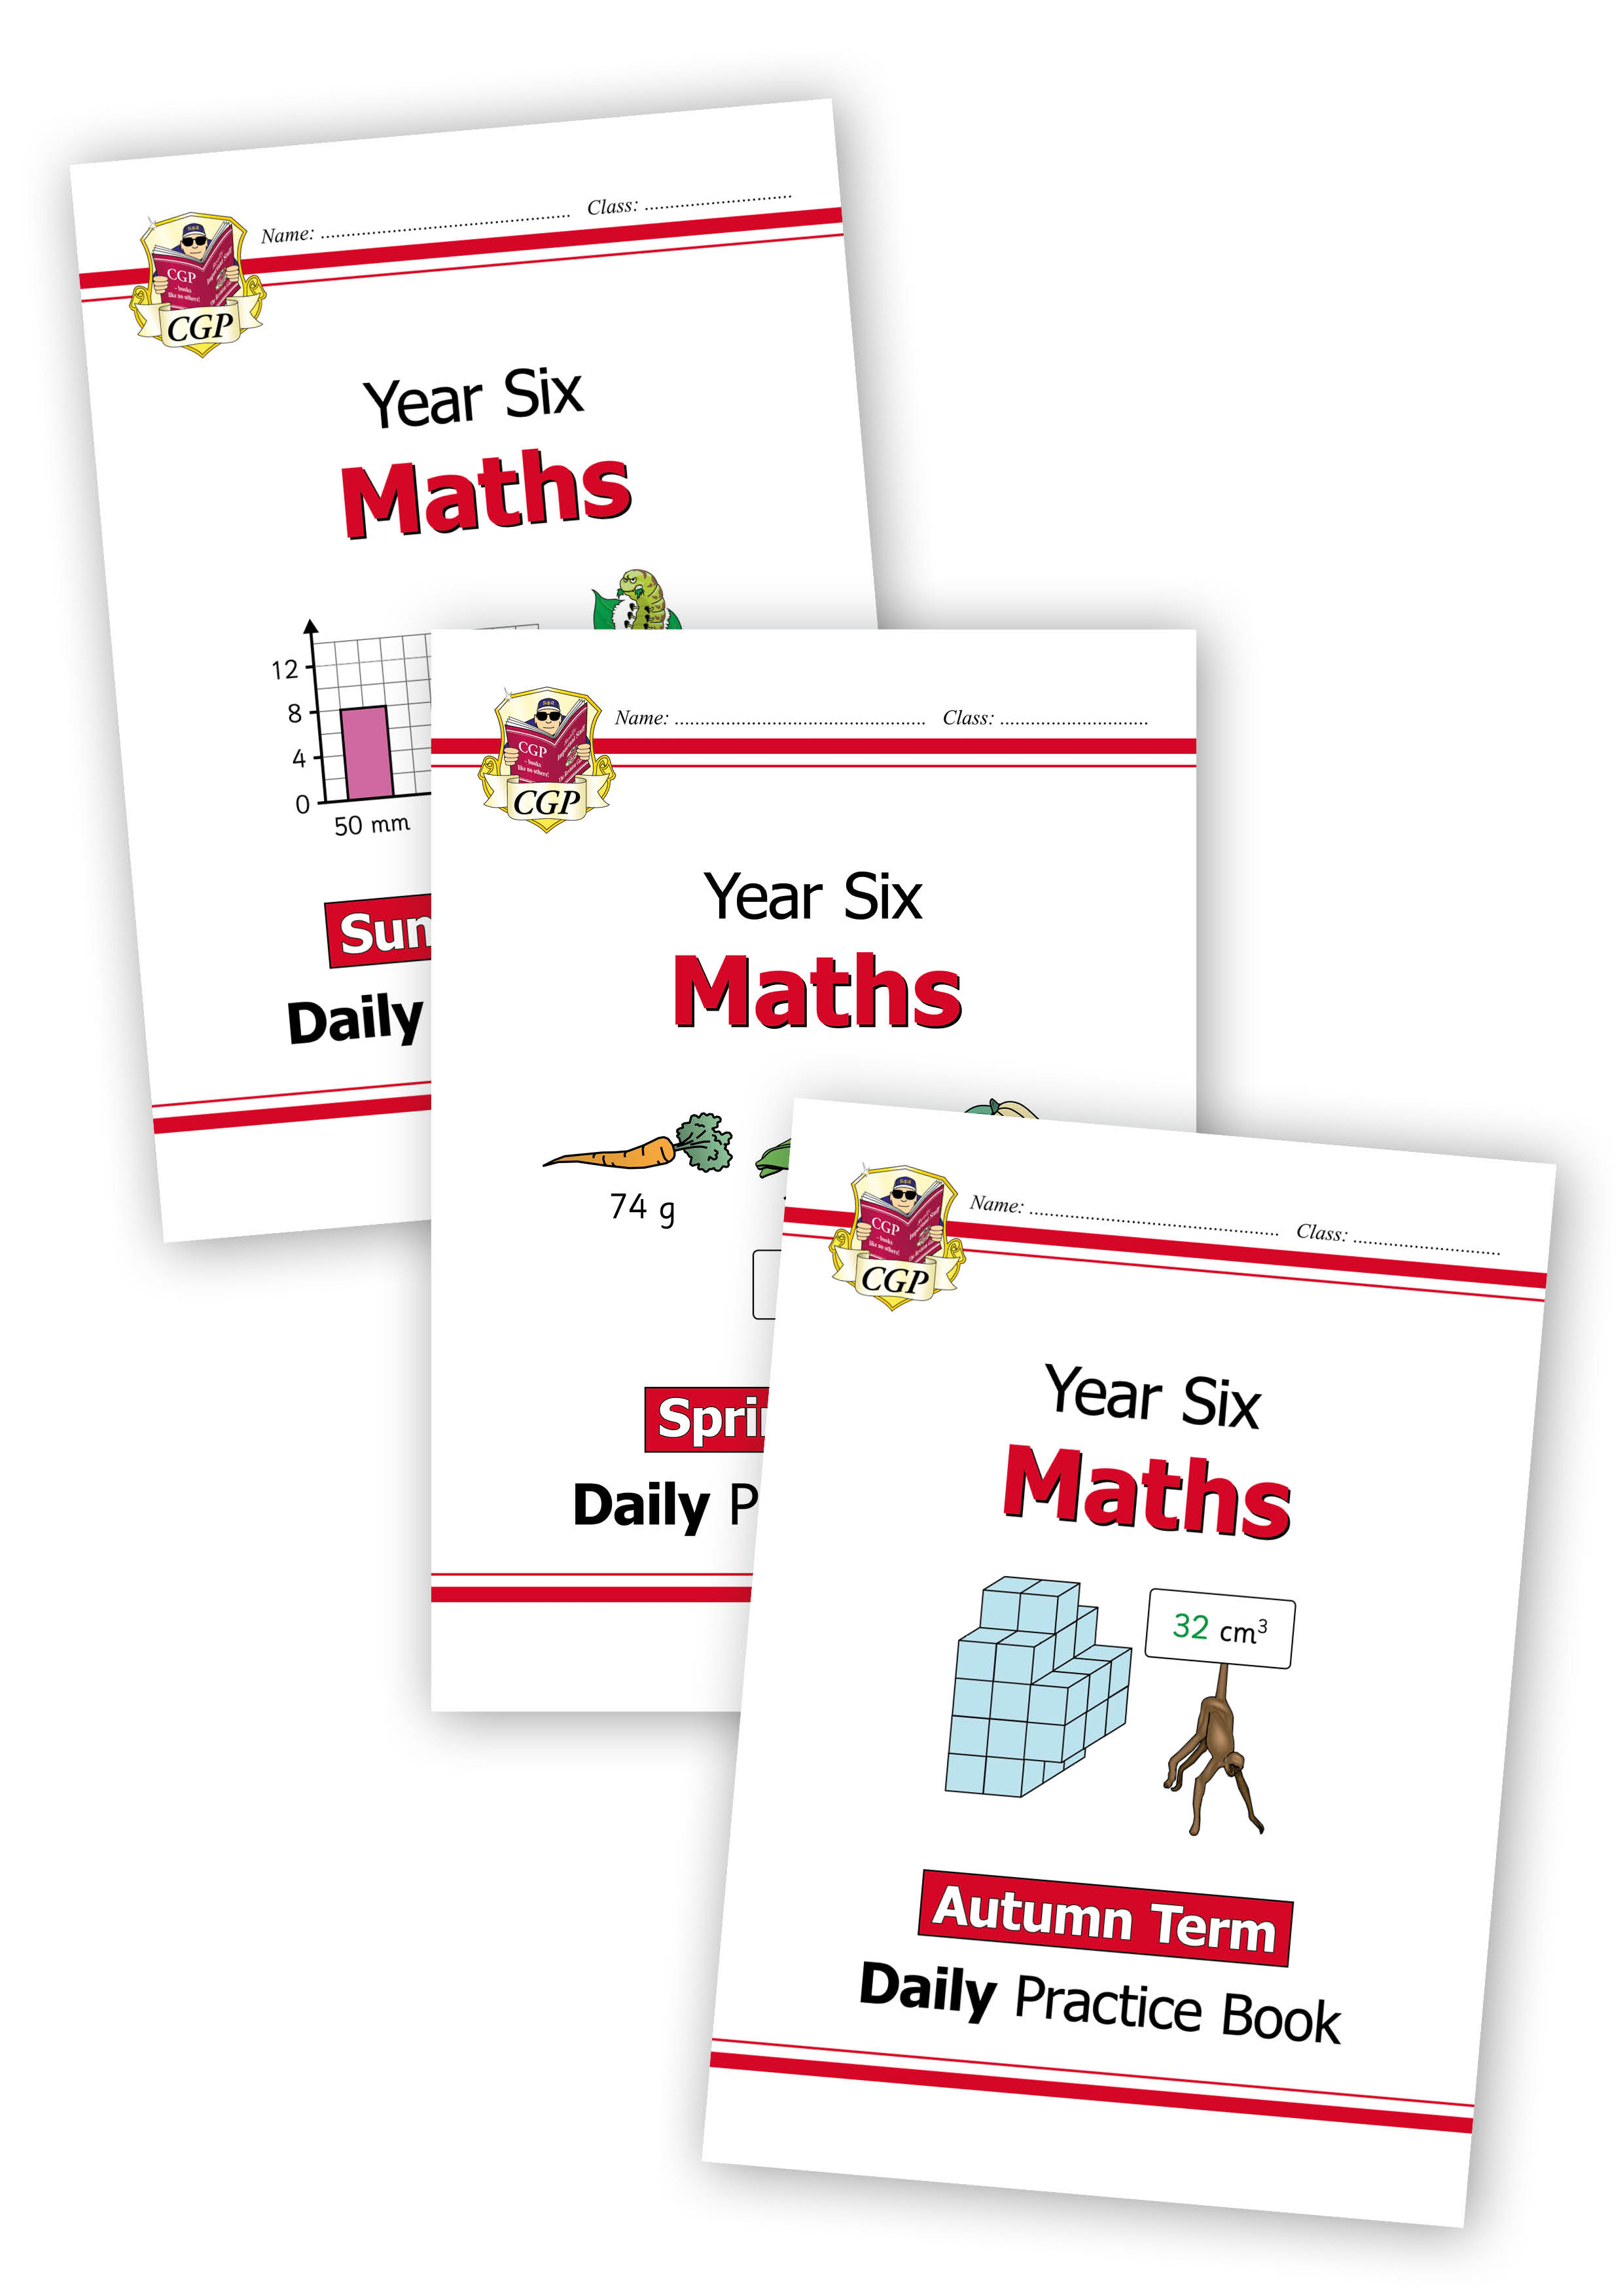 M6WB21 - New KS2 Maths Daily Practice Book Bundle: Year 6 - Autumn Term, Spring Term & Summer Term